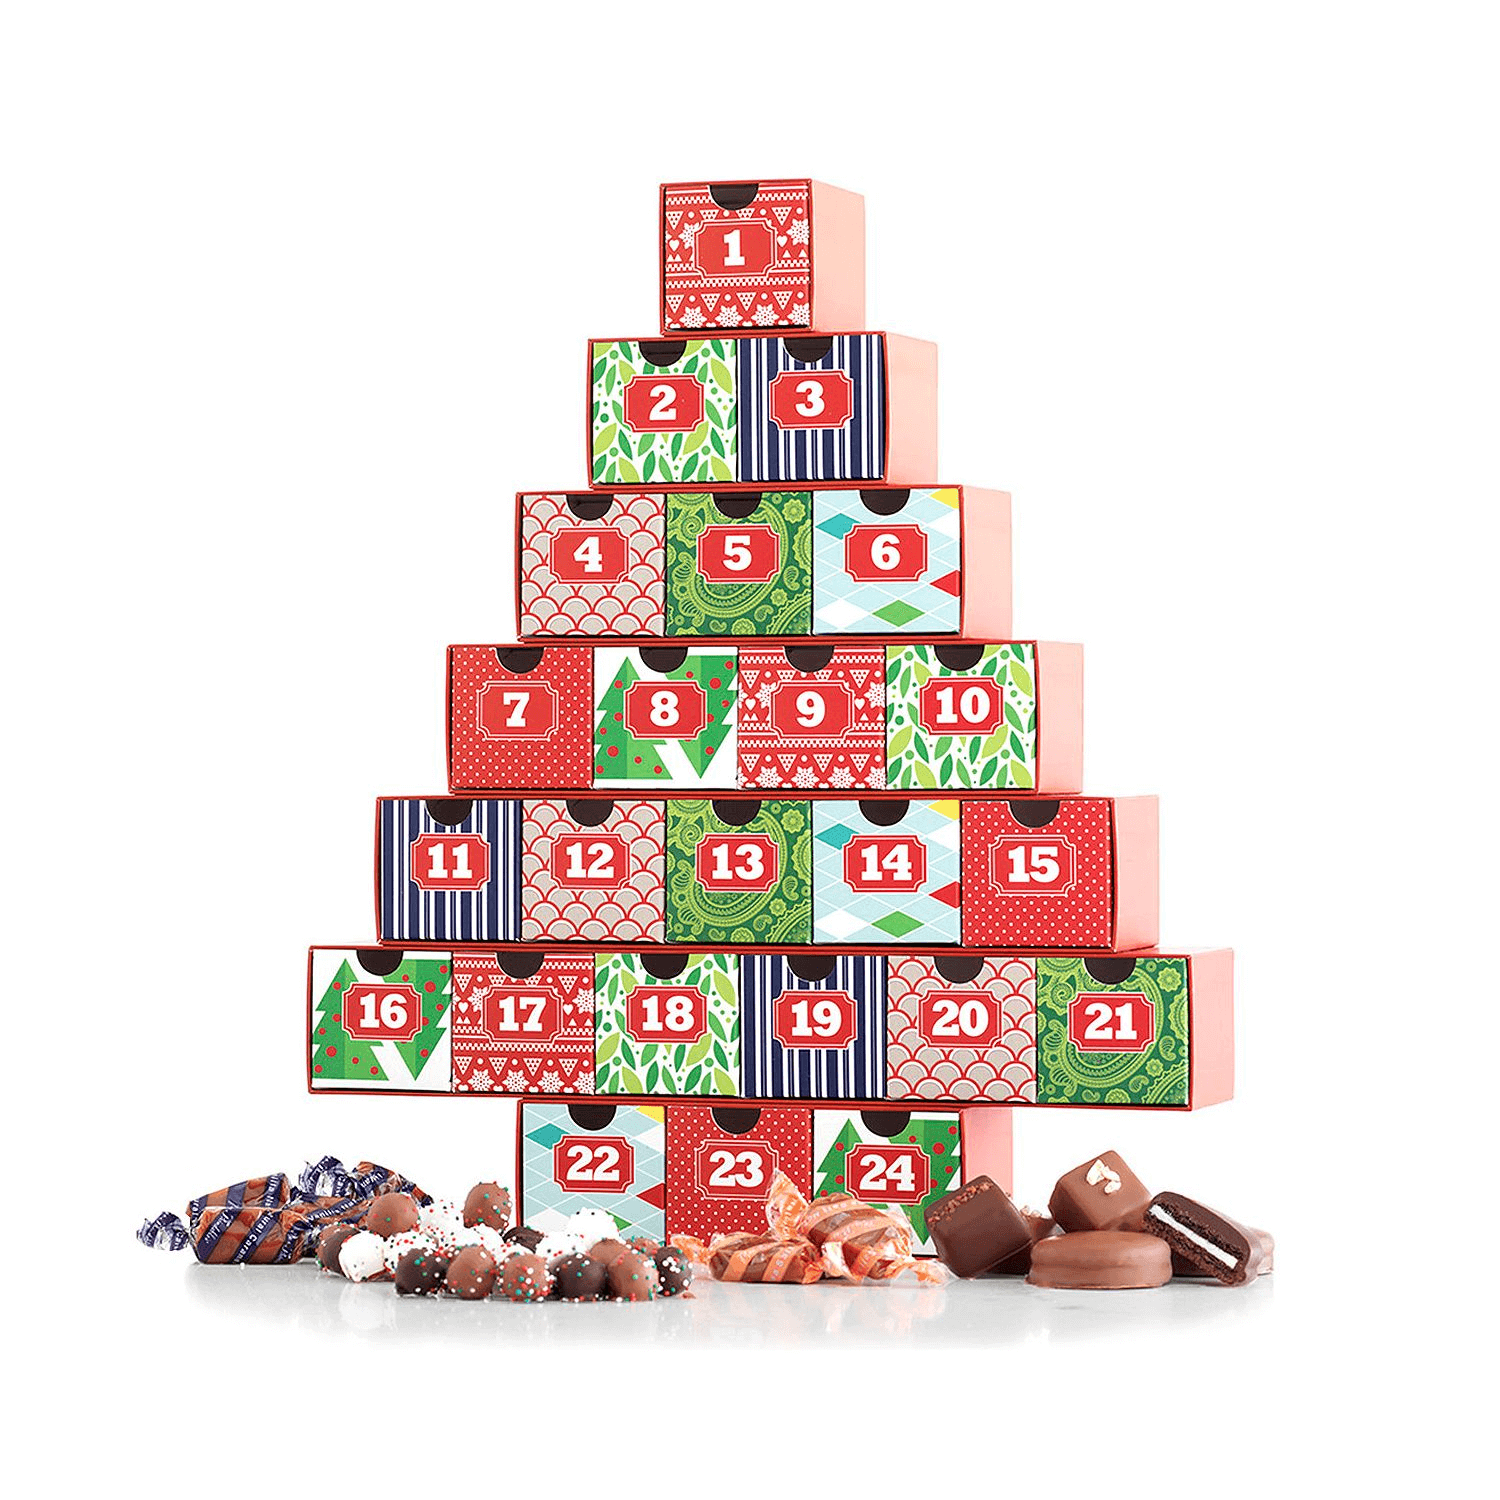 Advent Calendar Ideas Without Chocolate : Chocolate candy advent calendars for a sweet